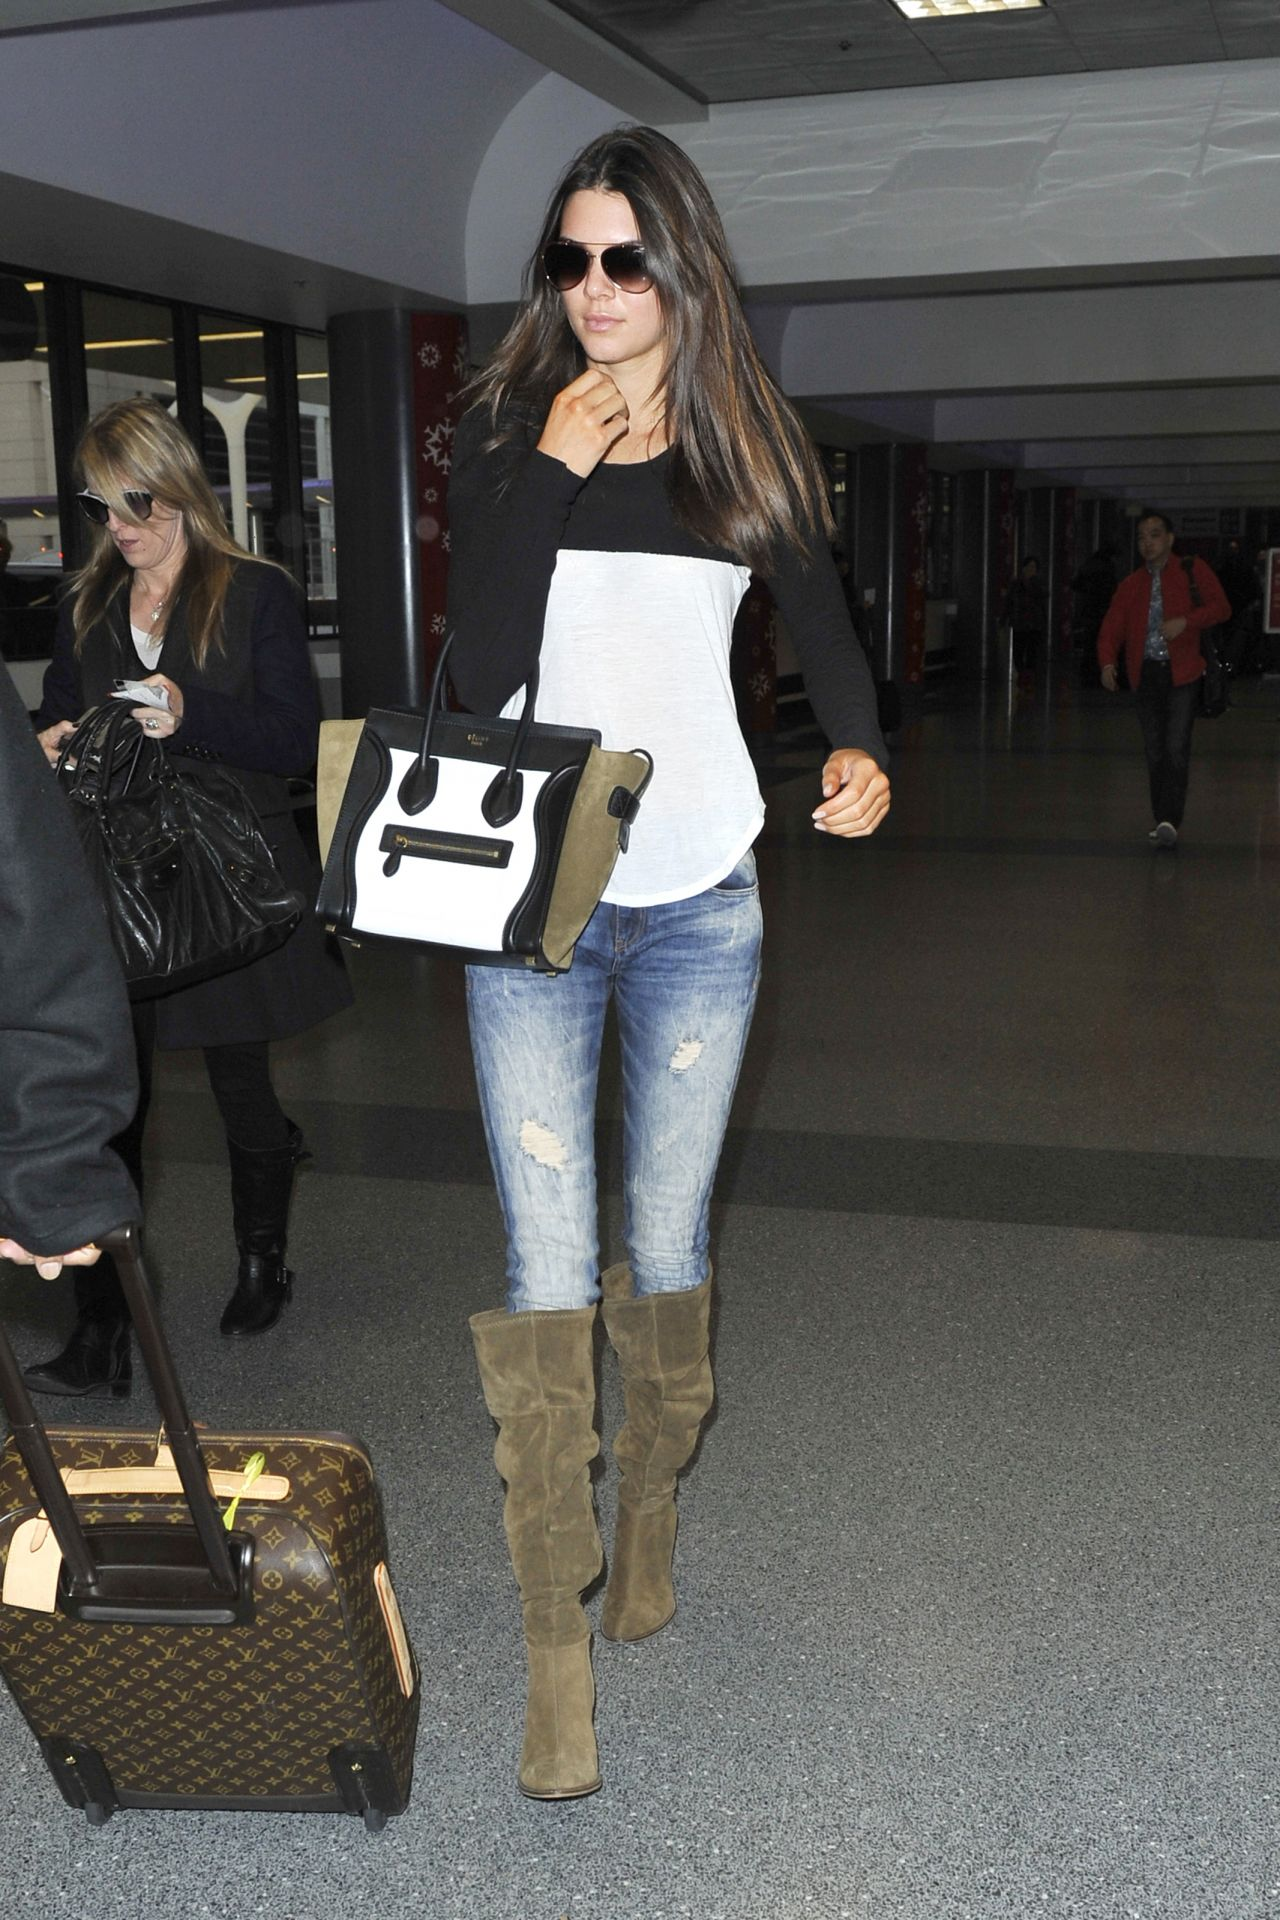 Kendall Jenner in Jeans at LAX Airport - November 2013